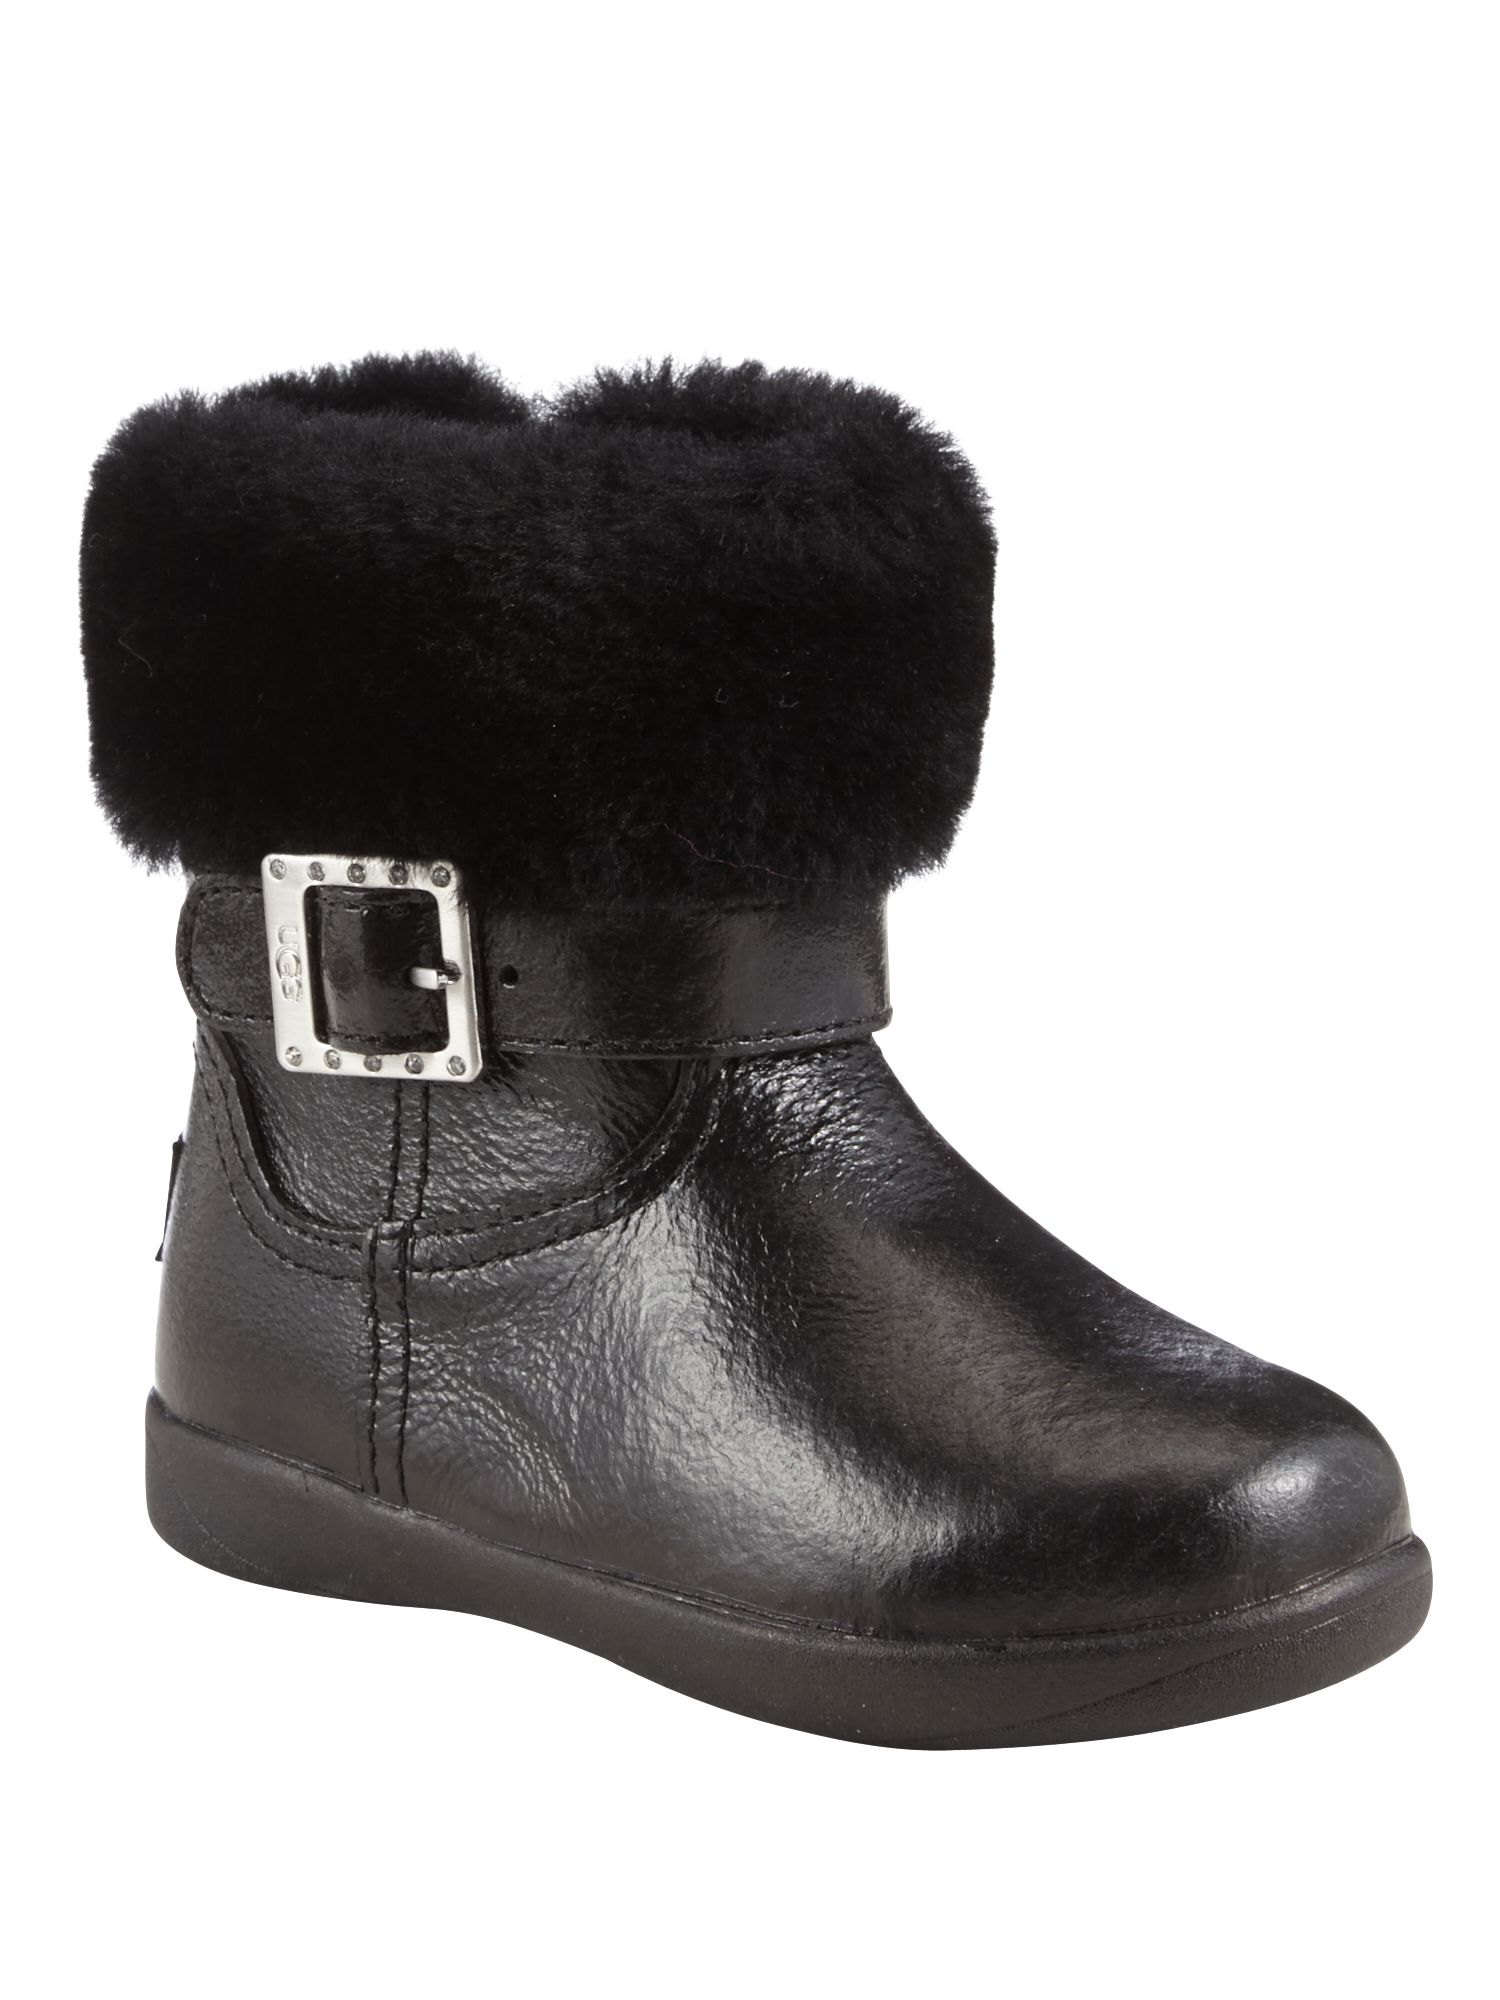 34ab8bdc6d0 ireland bailey button ugg boots house of fraser uk 11d20 f0261